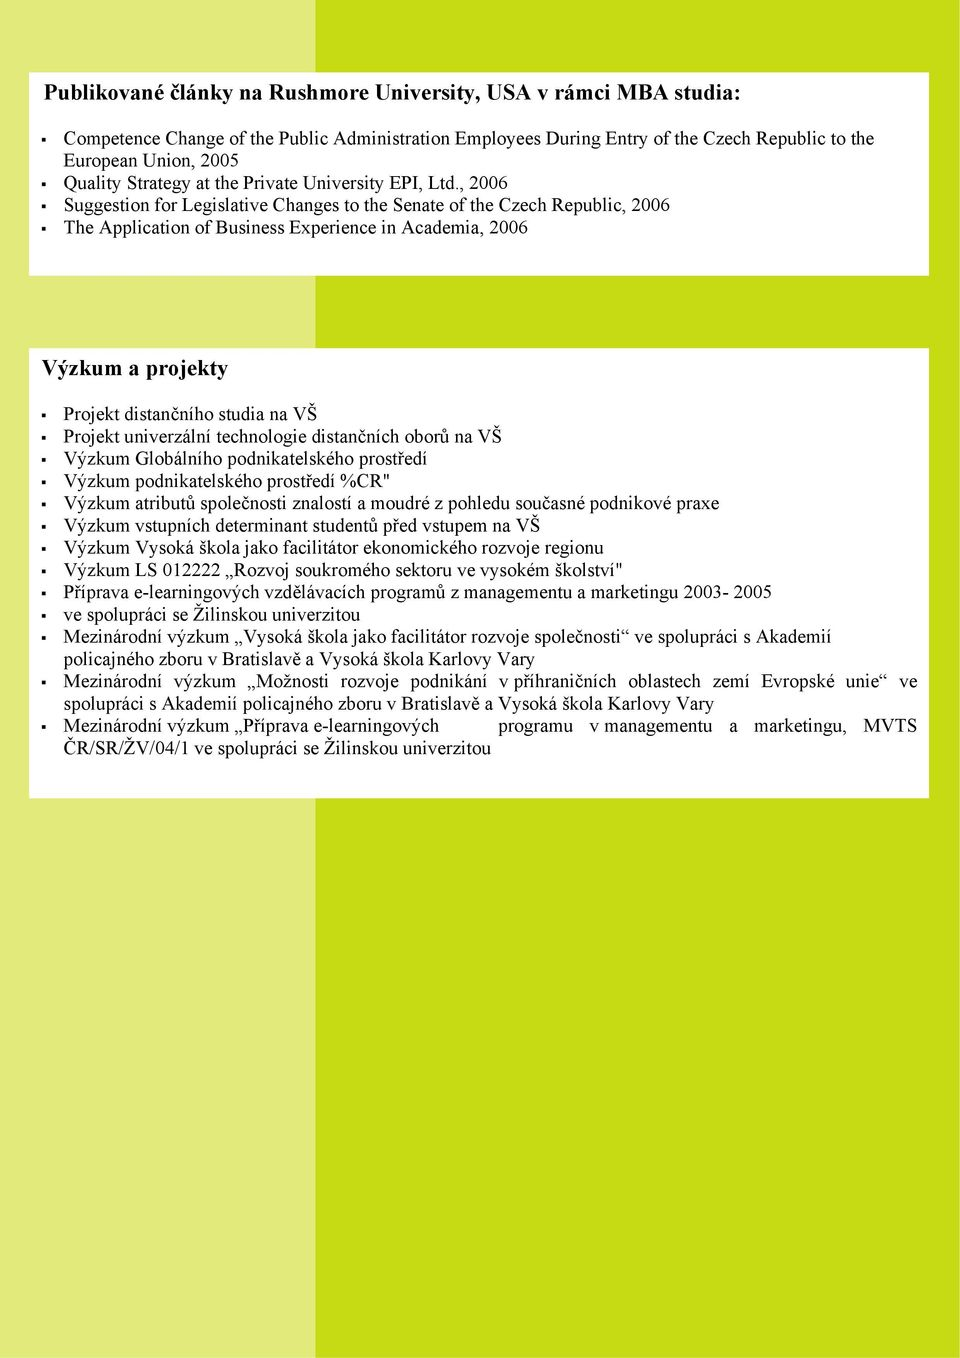 , 2006 Suggestion for Legislative Changes to the Senate of the Czech Republic, 2006 The Application of Business Experience in Academia, 2006 Výzkum a projekty Projekt distančního studia na VŠ Projekt